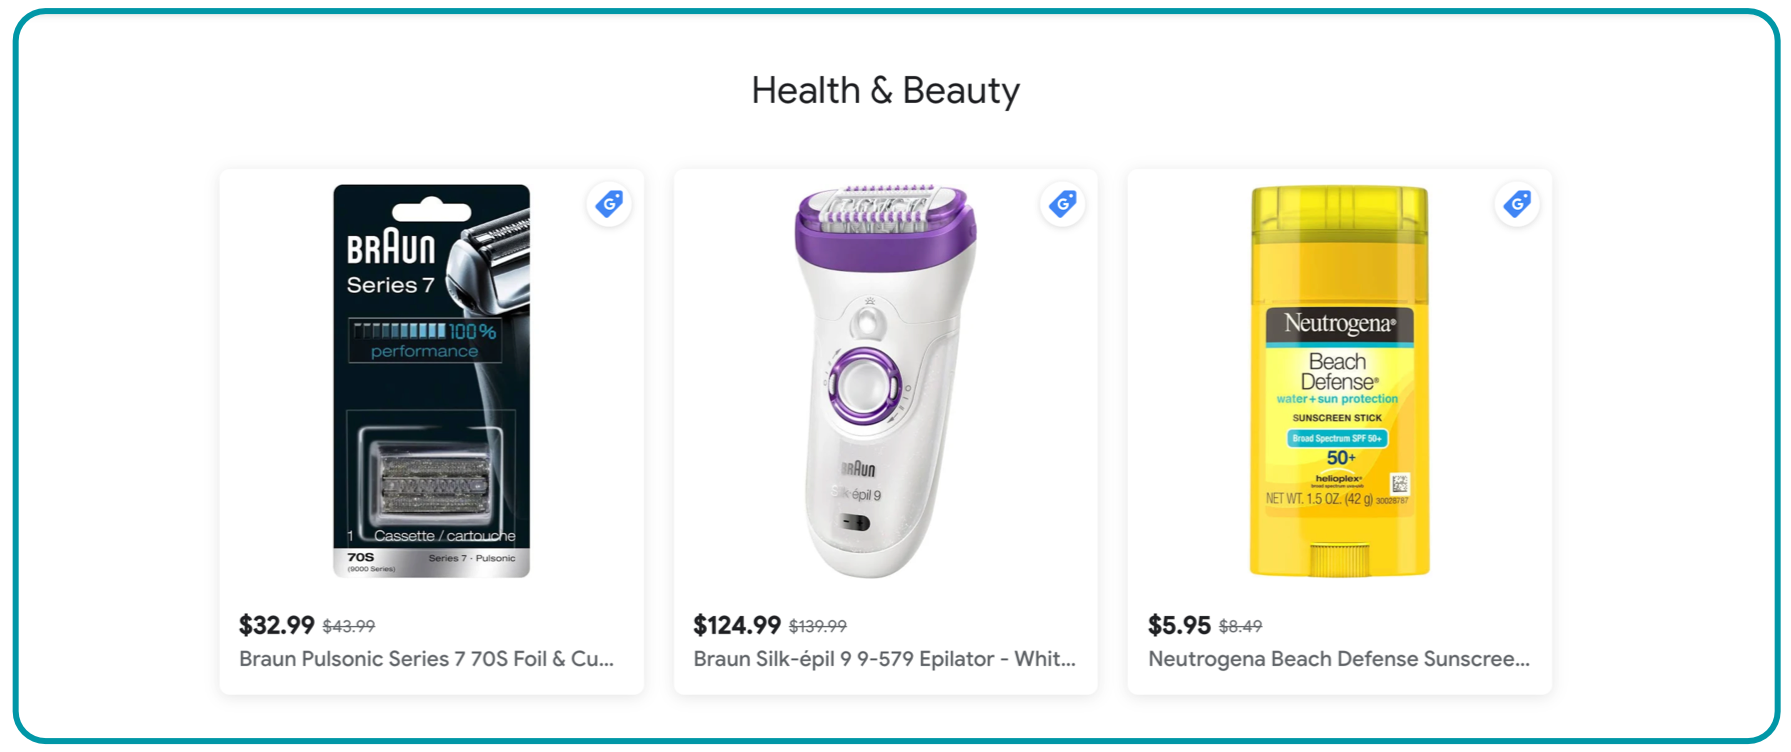 example of personalized product recommendations on google shopping